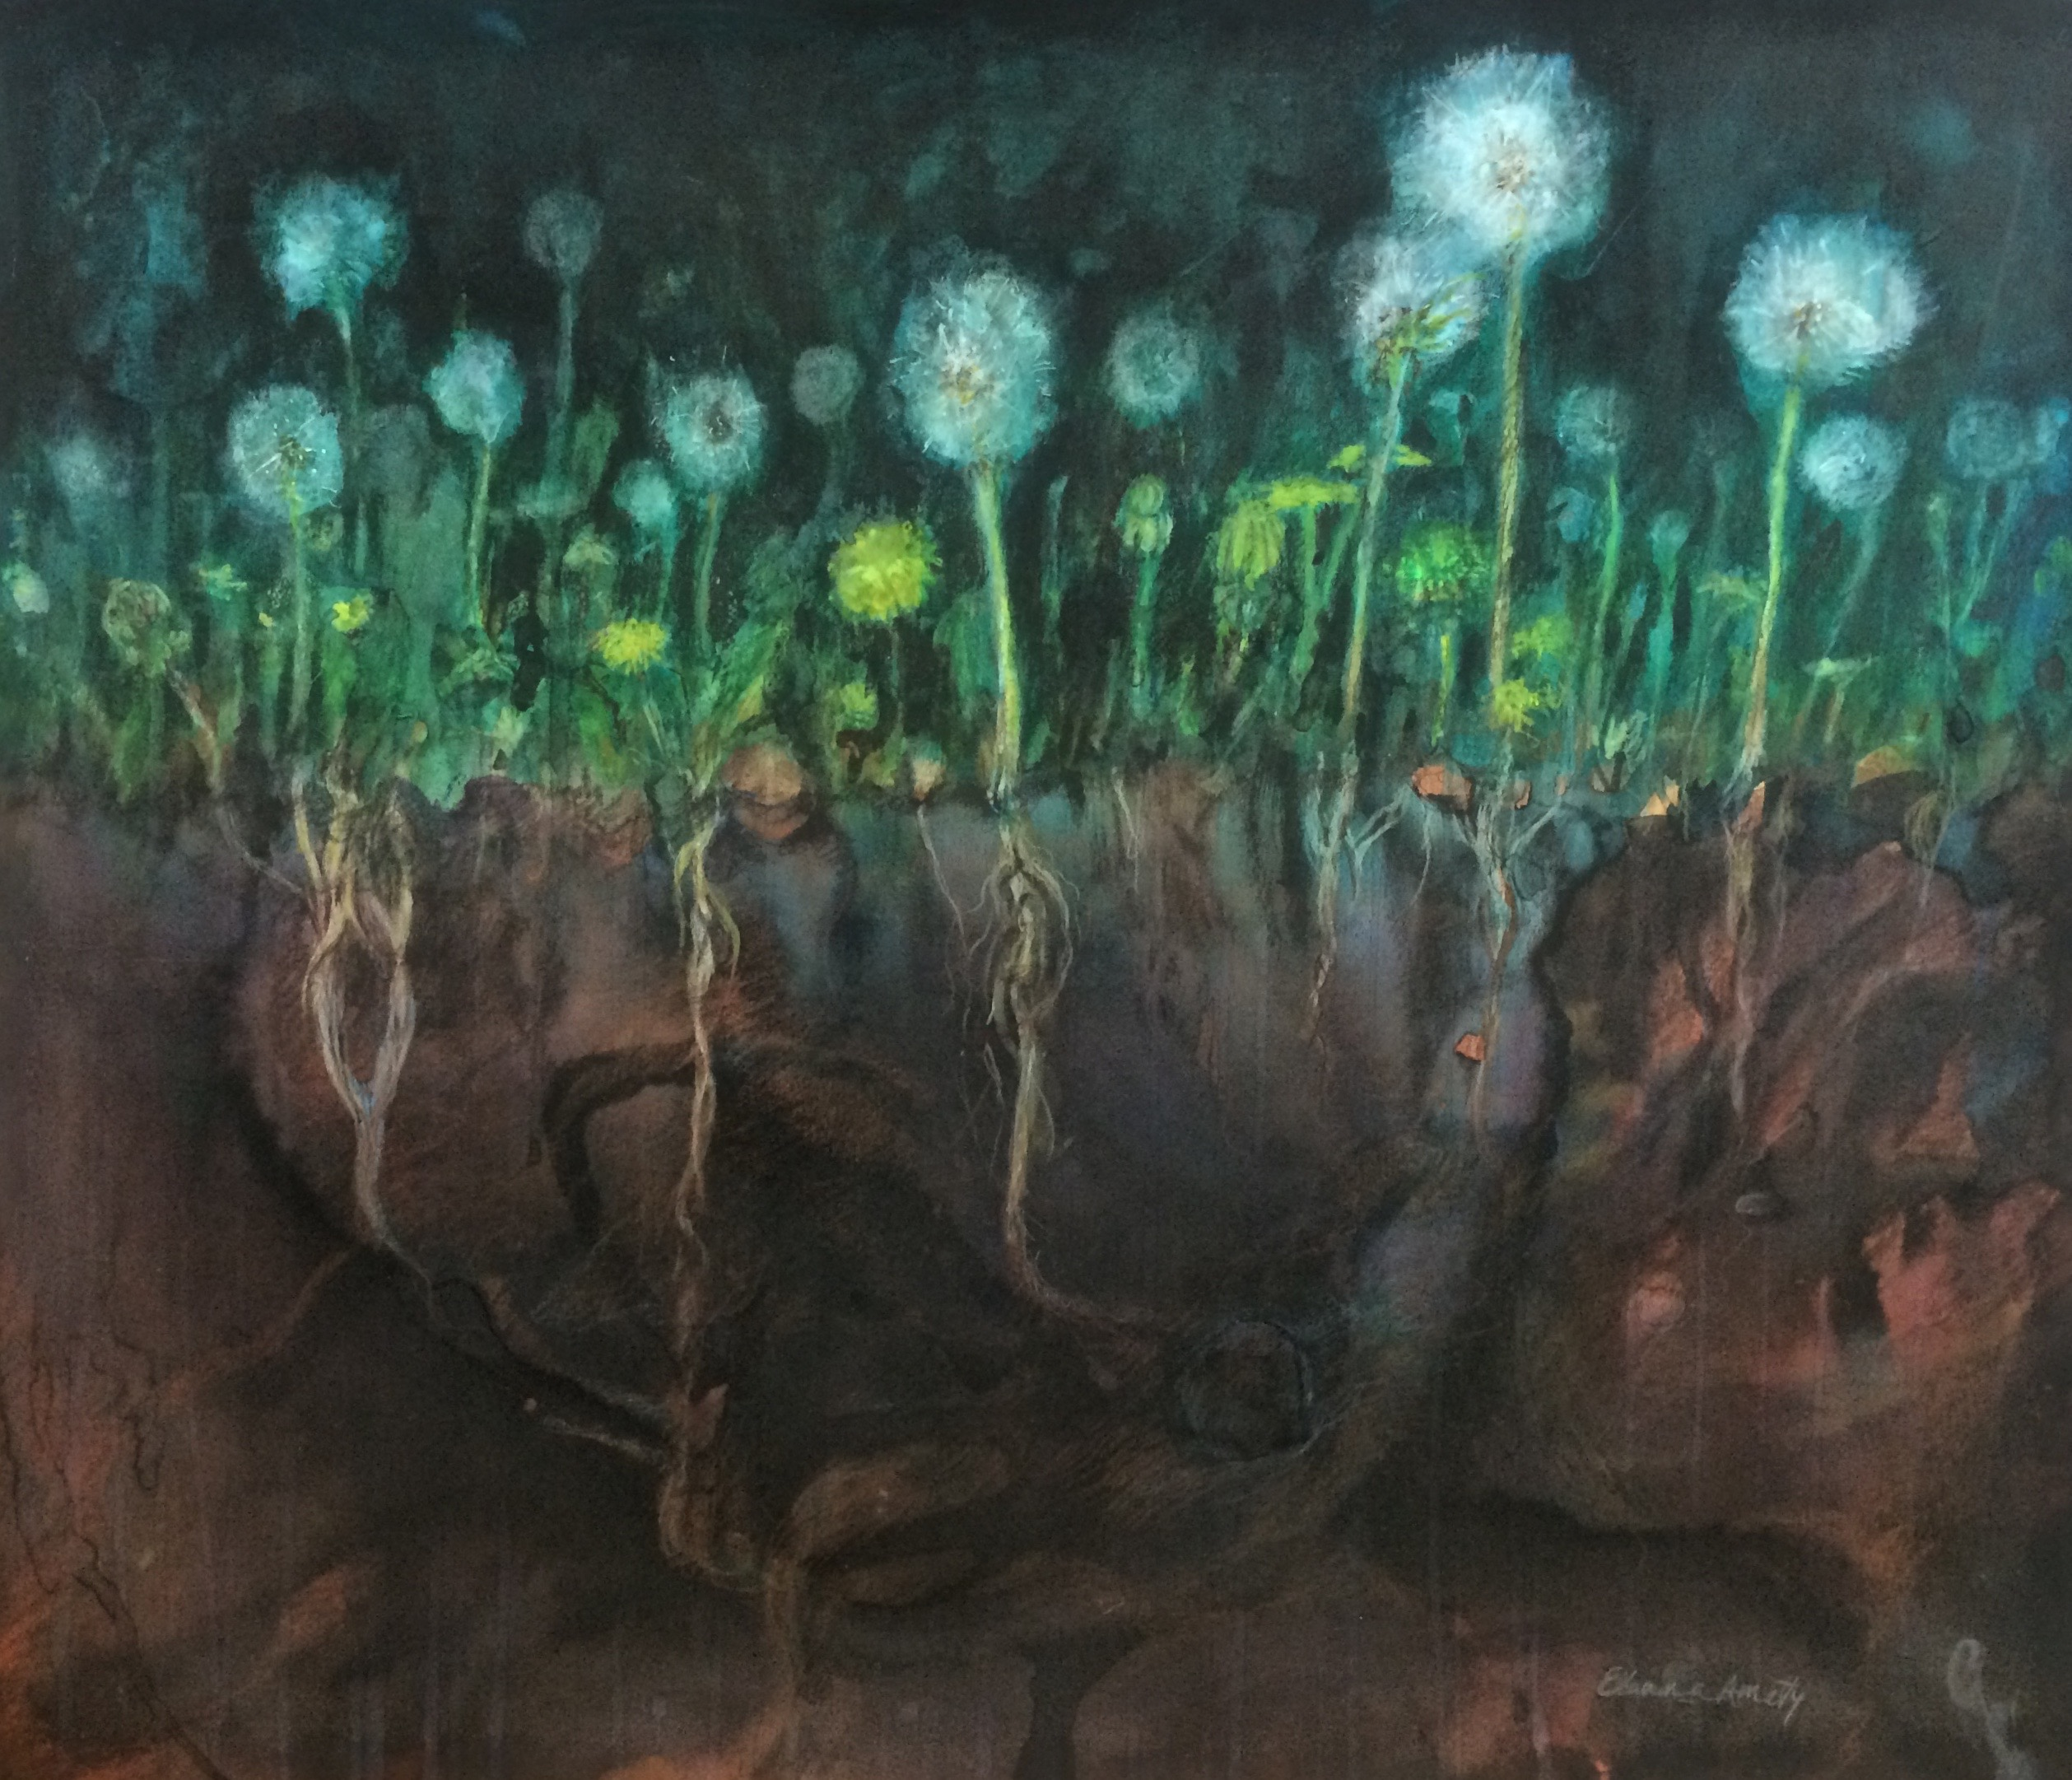 Dandelions with Roots